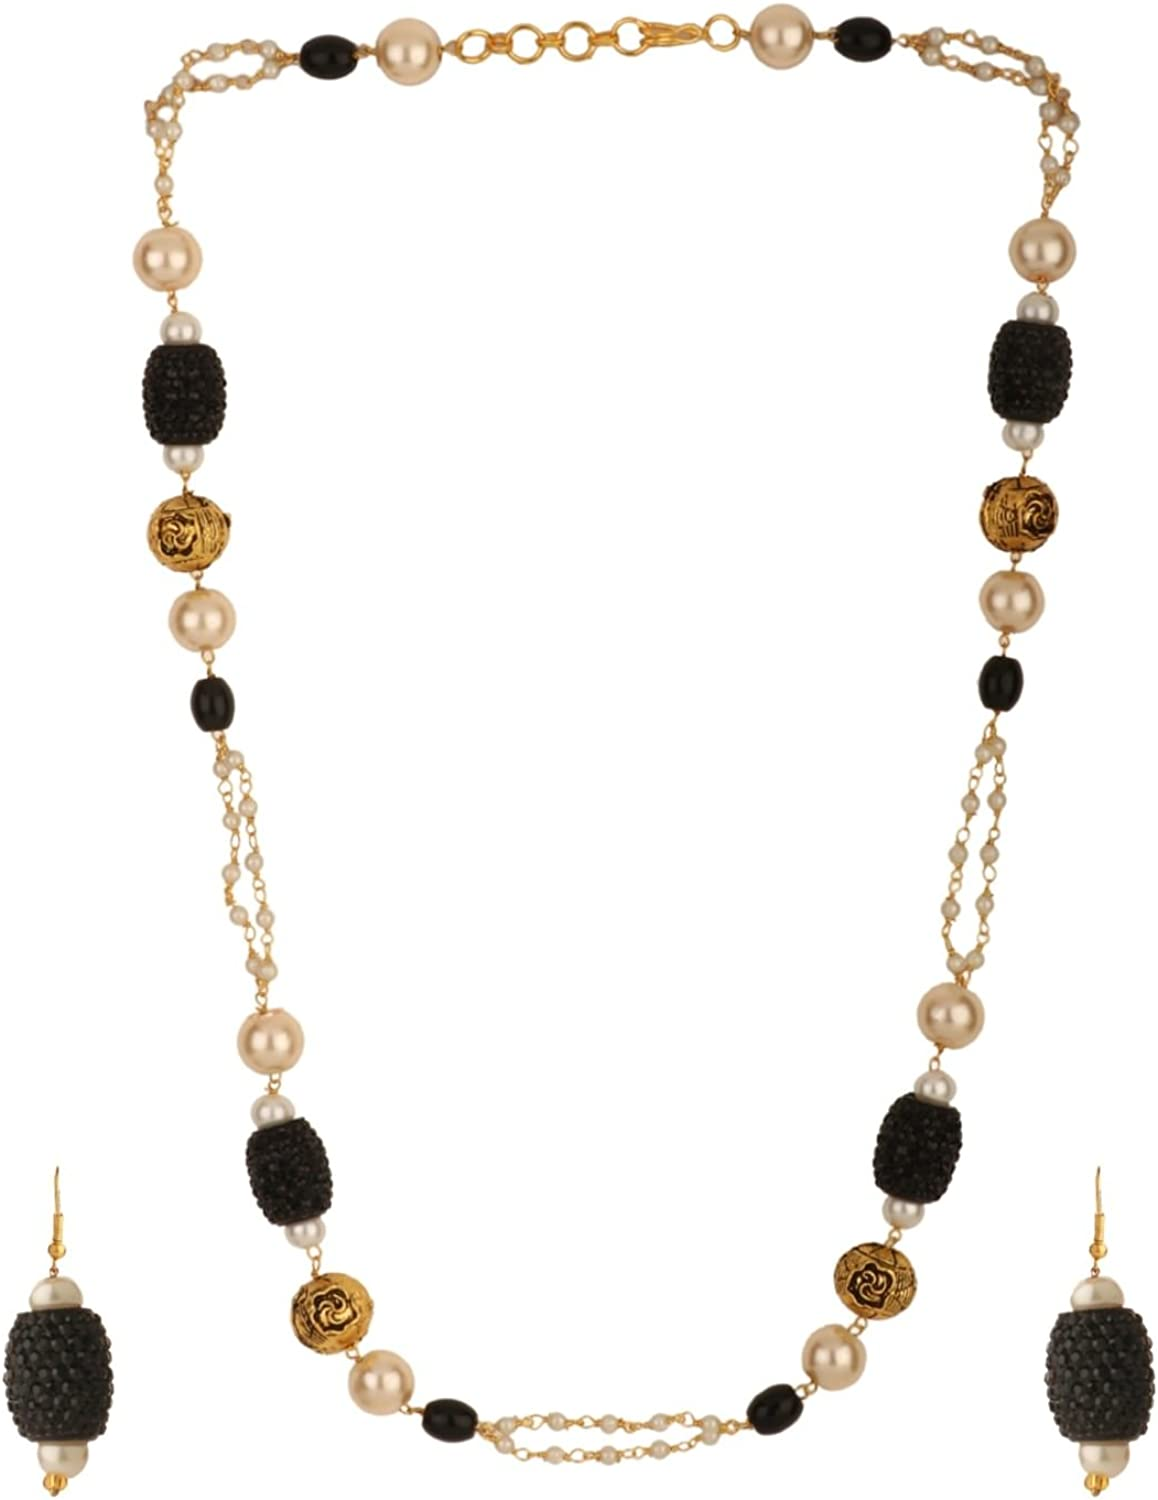 Efulgenz Indian Layered Traditional 14 K Gold Plated Black Faux Pearl Beads Strand Necklace Earrings Set Fashion Costume Jewelry for Women